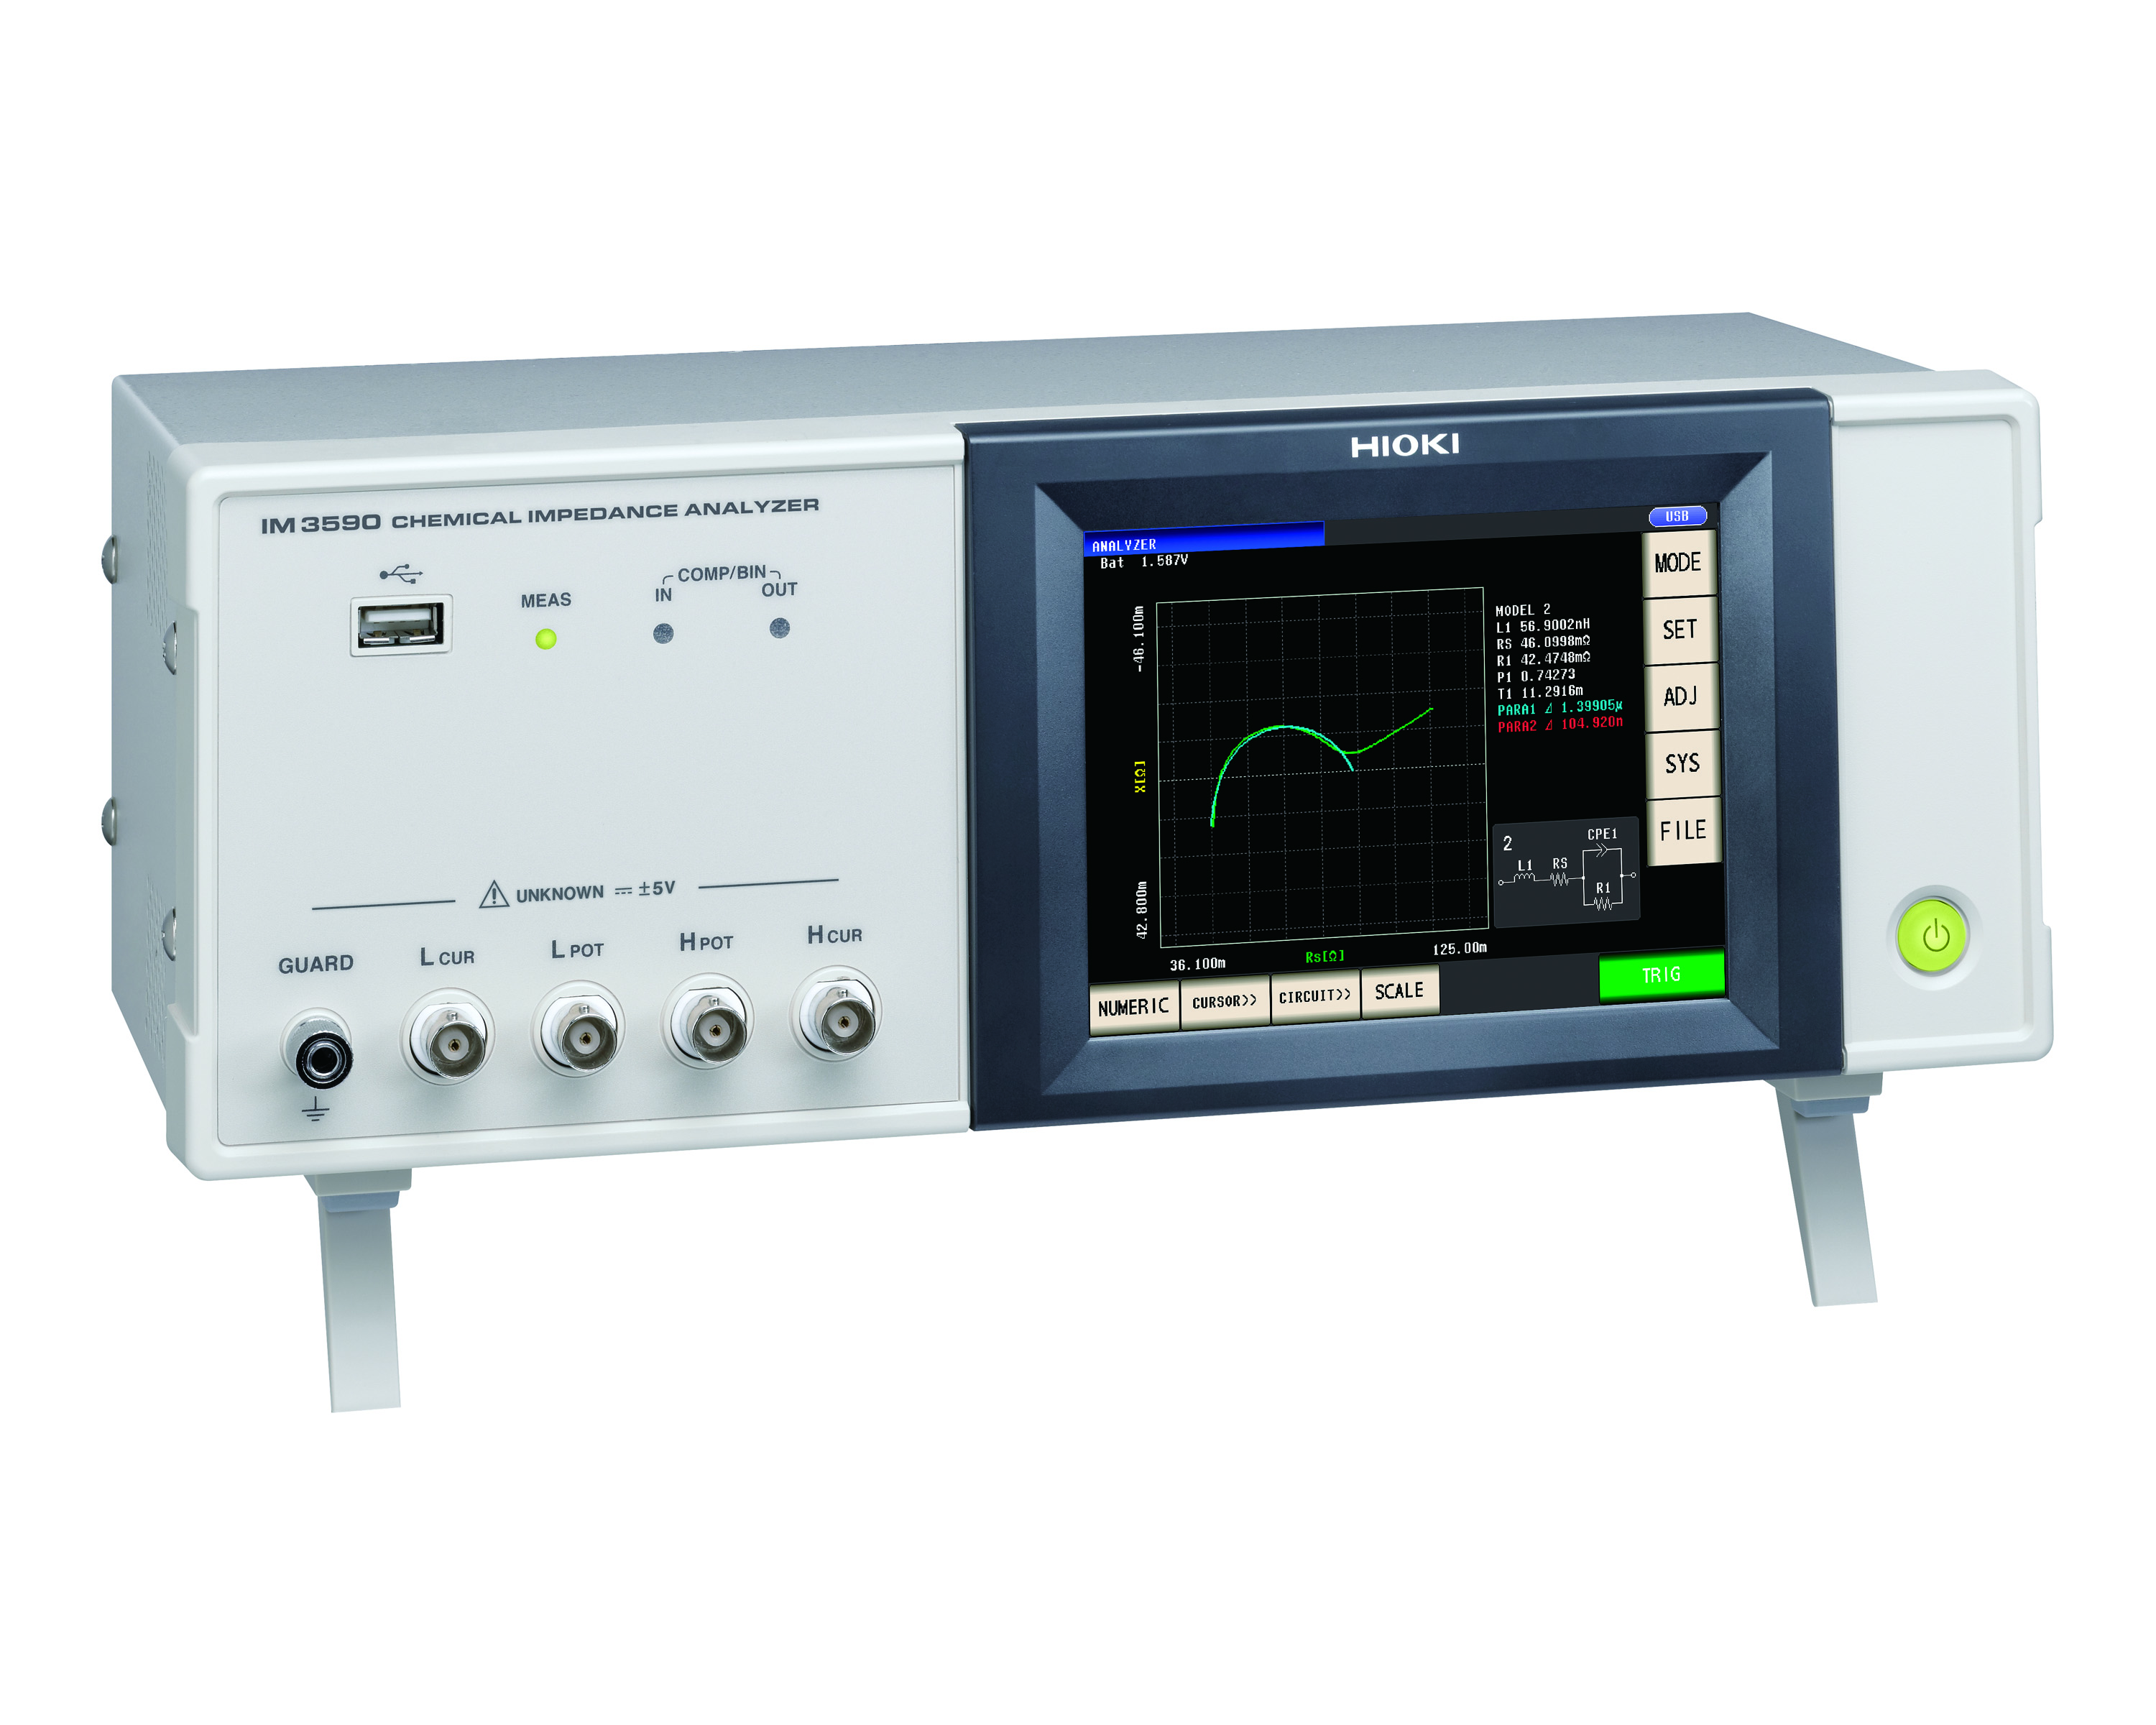 IM3590 Chemical Impedance Analyzer